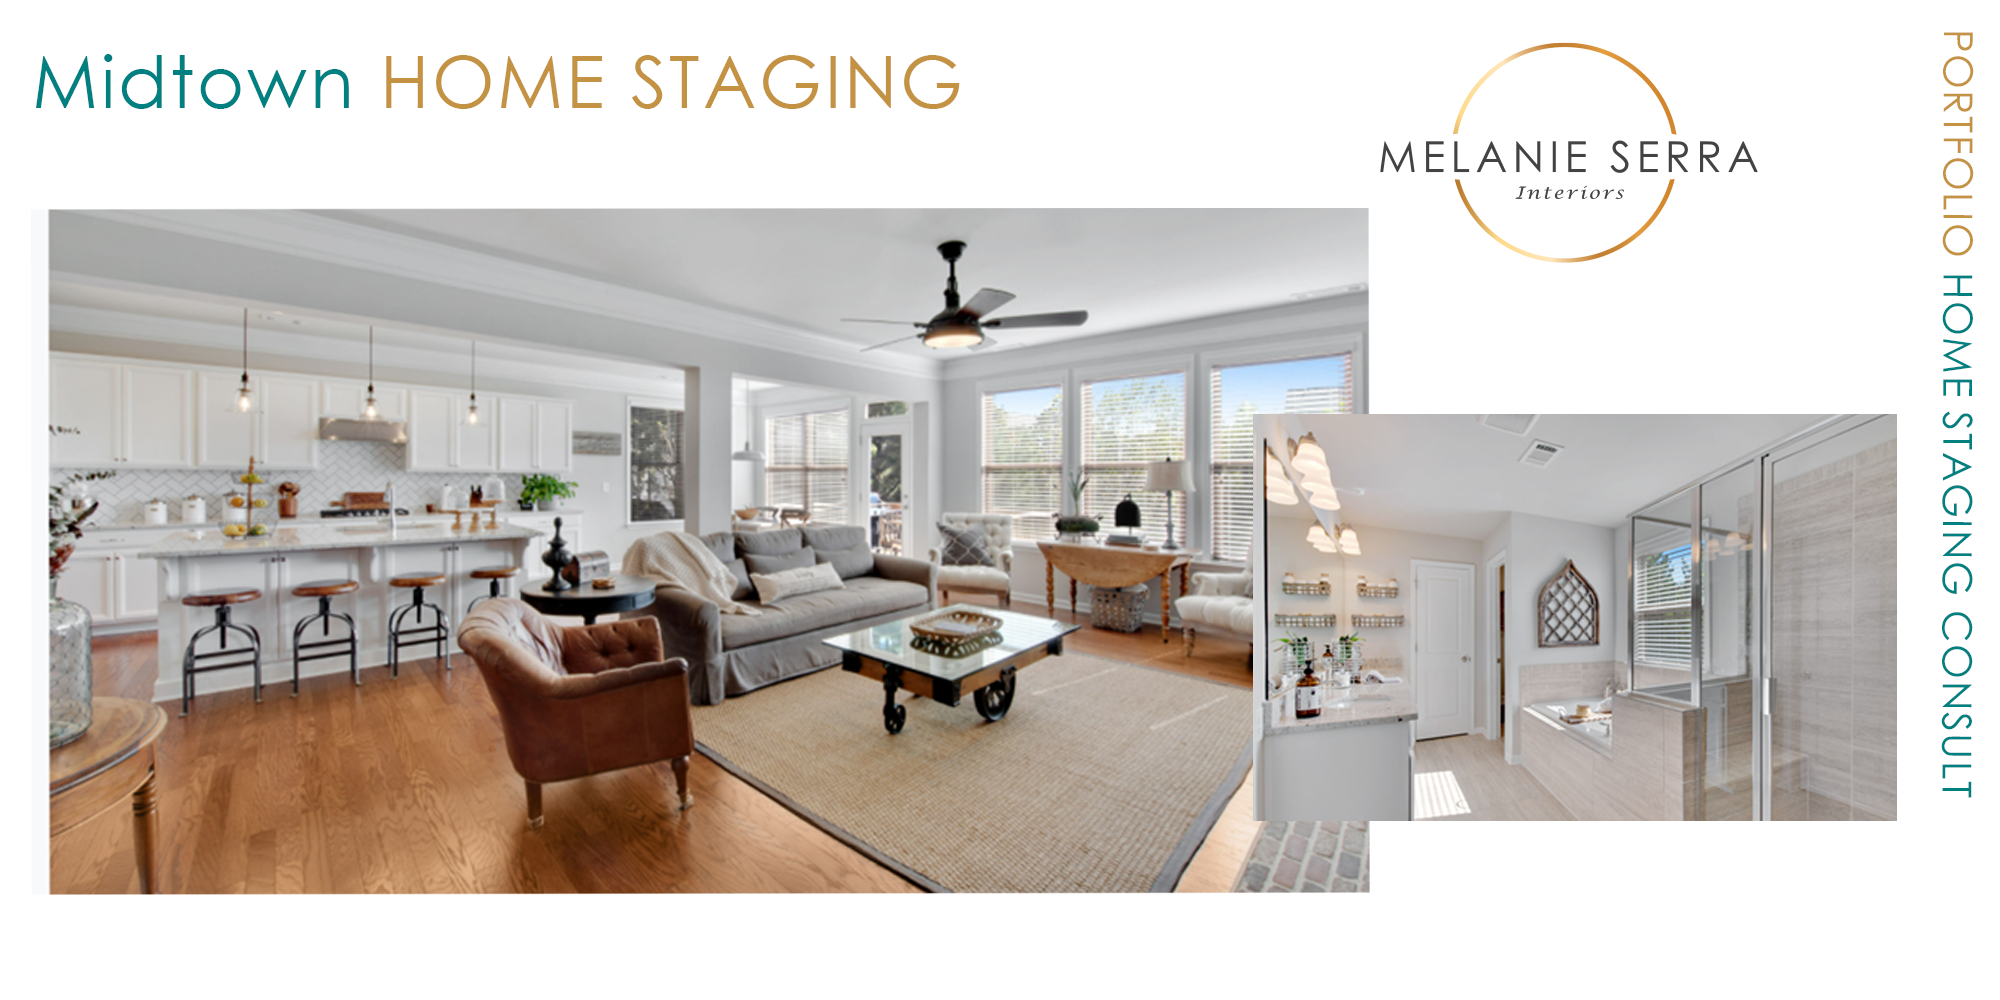 Midtown Staging